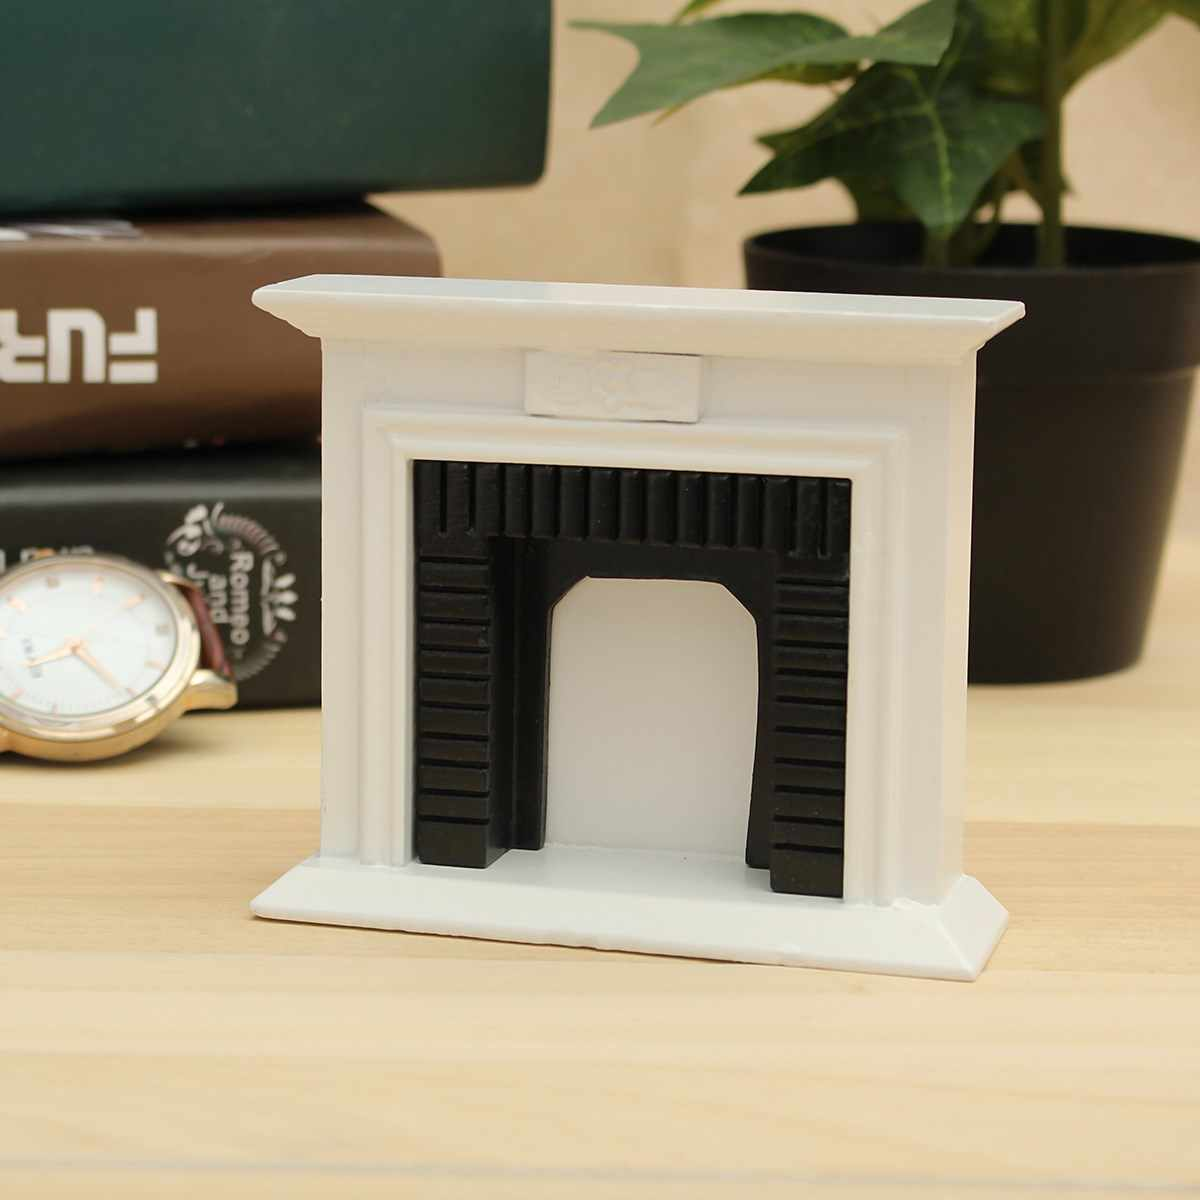 1/12 Scale DIY Handmade Miniature White Fireplace Dollhouse Decor Furniture Accessorie Kits Mini Toys Gift For Children